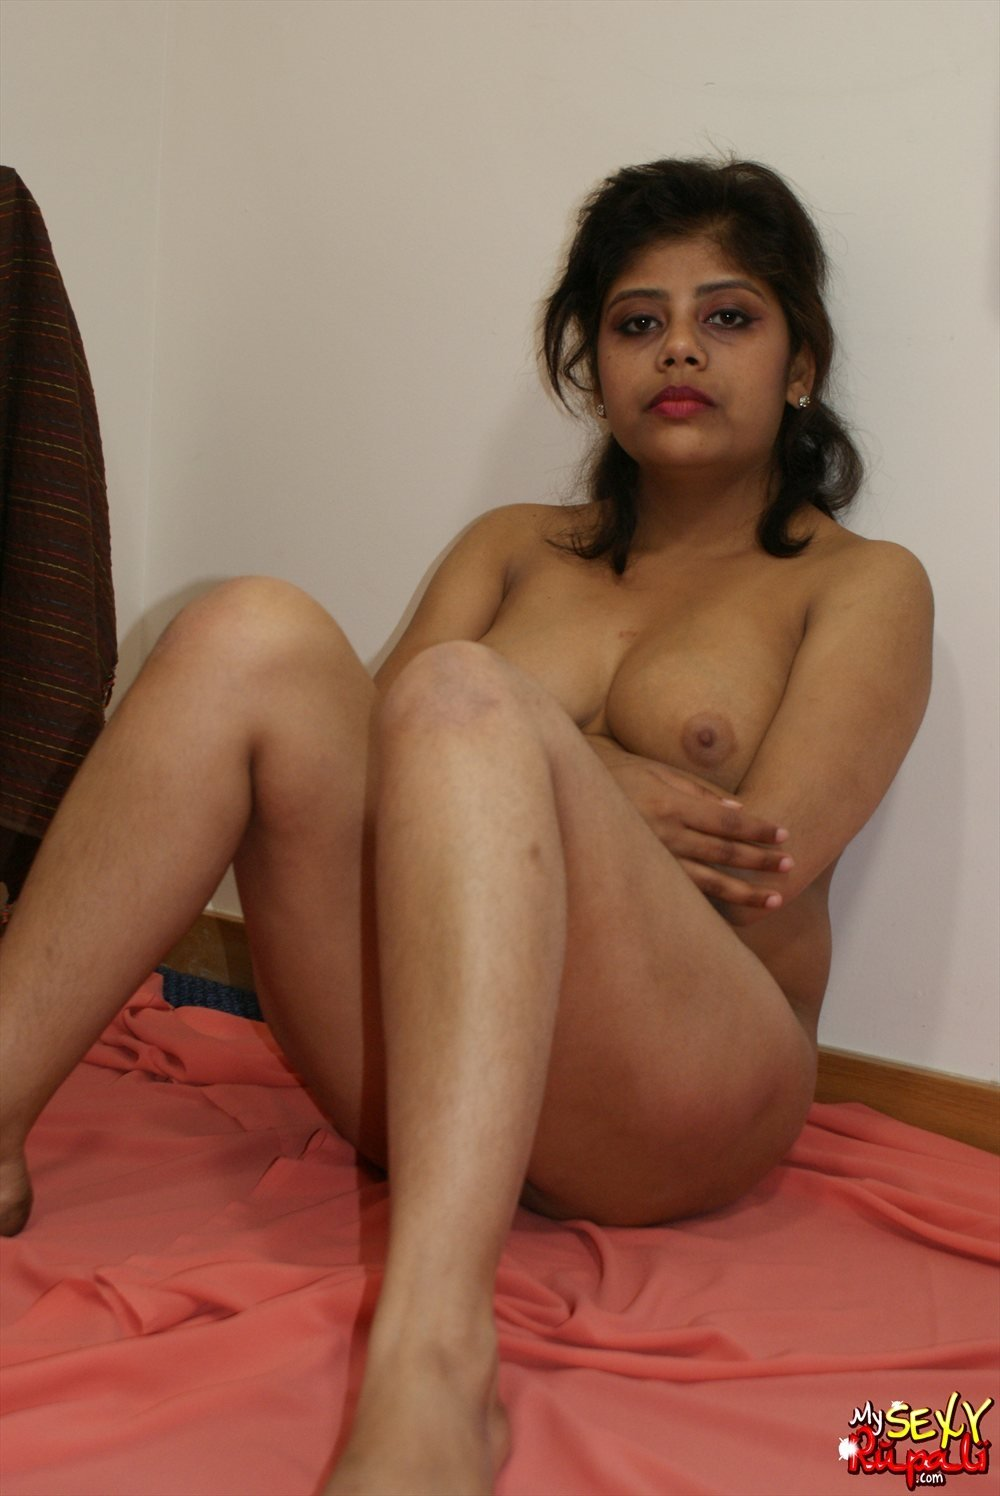 Punjabi nude fake girls photo, naked girlfriend camping picture video